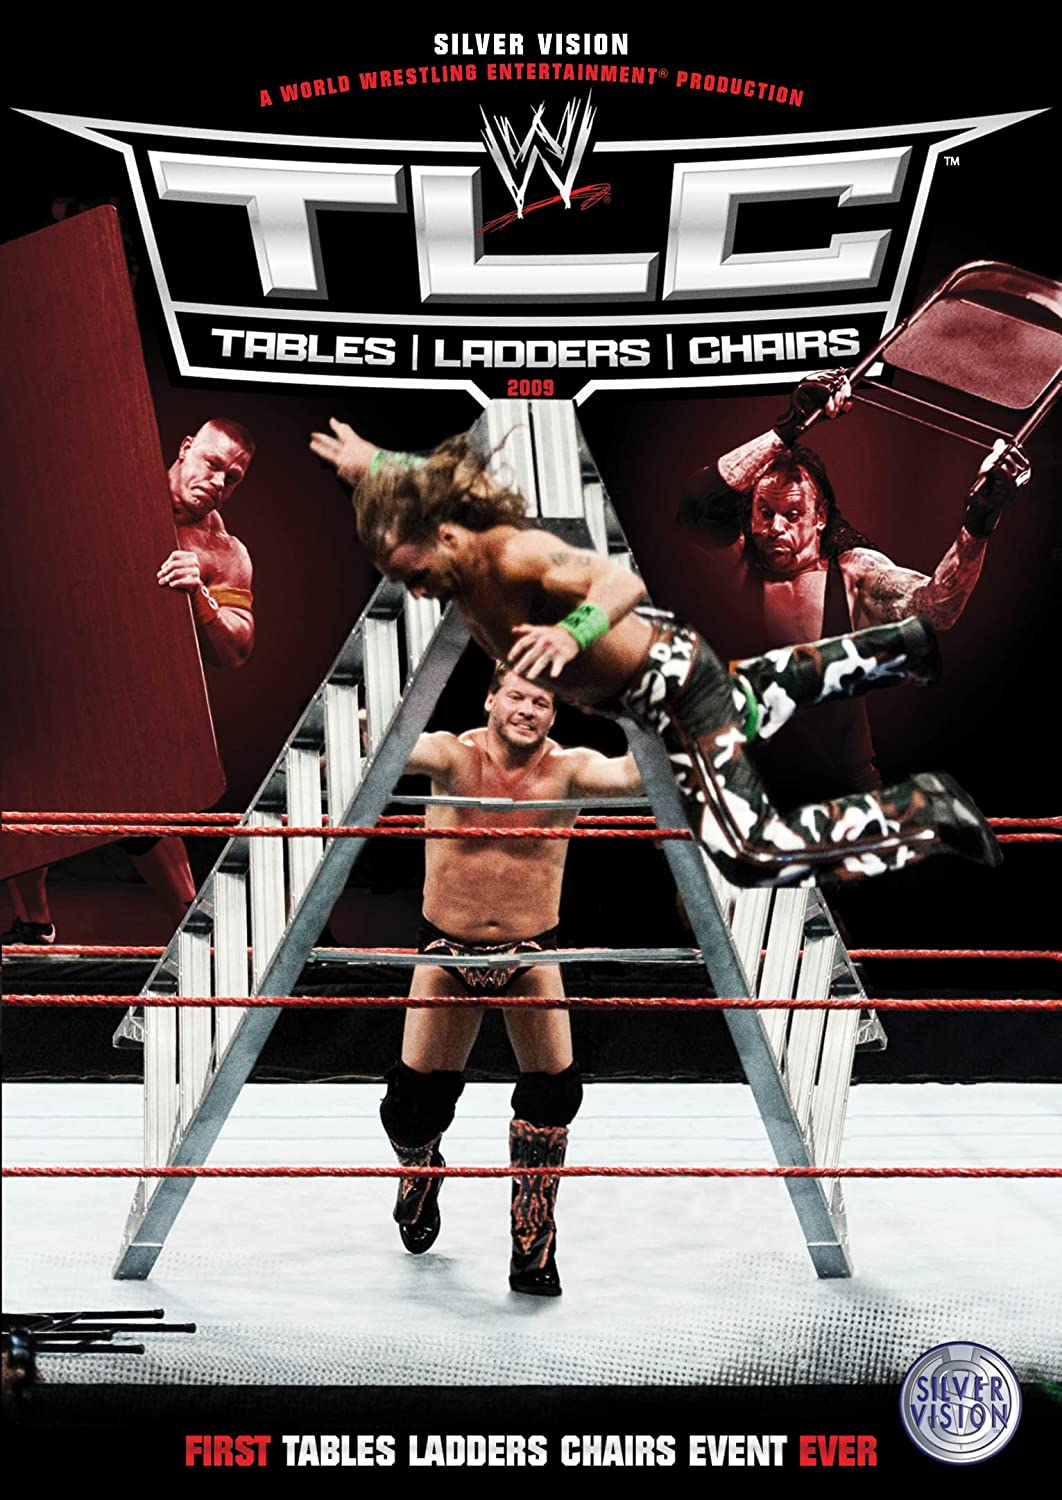 Wwe tables ladders and chairs 2013 poster - Wwe Tlc Tables Ladders Chairs 2009 Dvd Amazon Co Uk Wwe Dvd Blu Ray